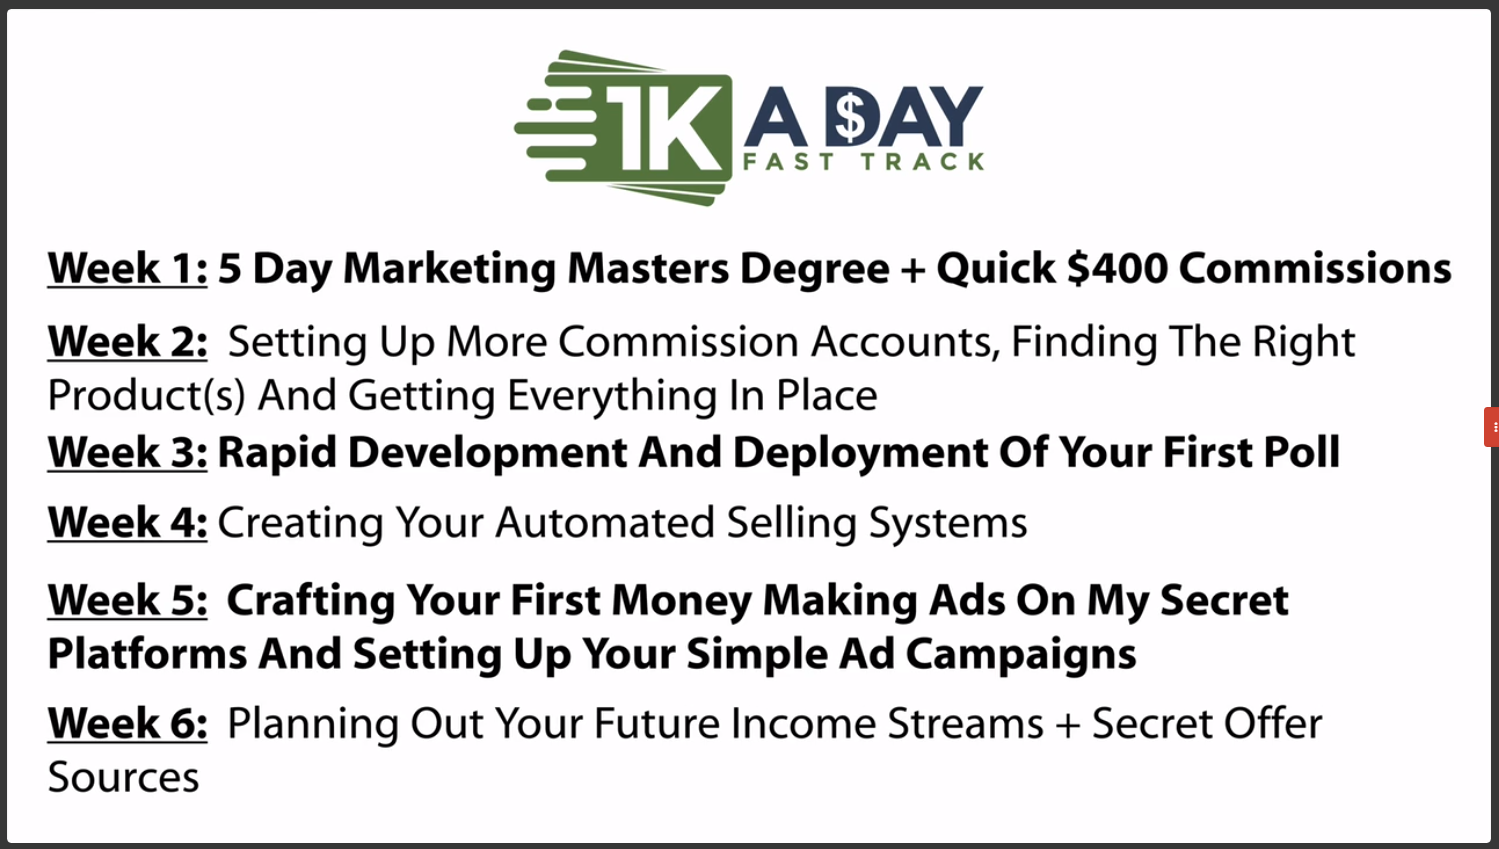 Specification Video Training Program 1k A Day Fast Track